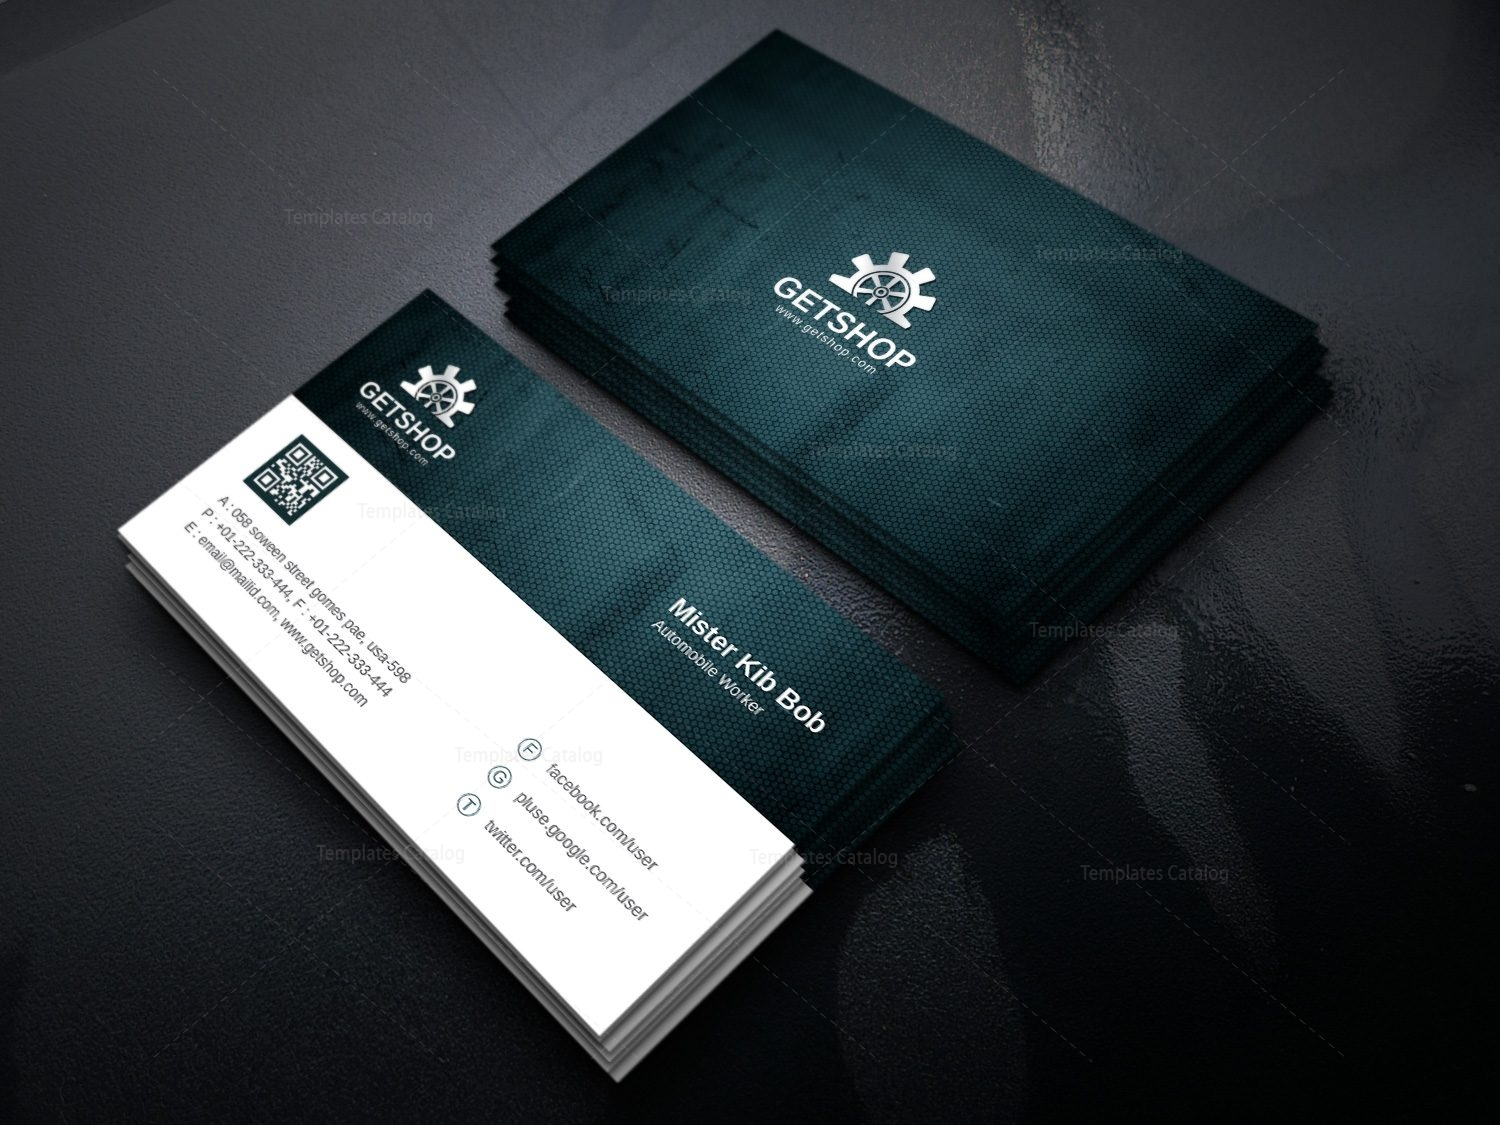 Fabric modern corporate business card template 000926 template catalog fabric modern corporate business card template 4 colourmoves